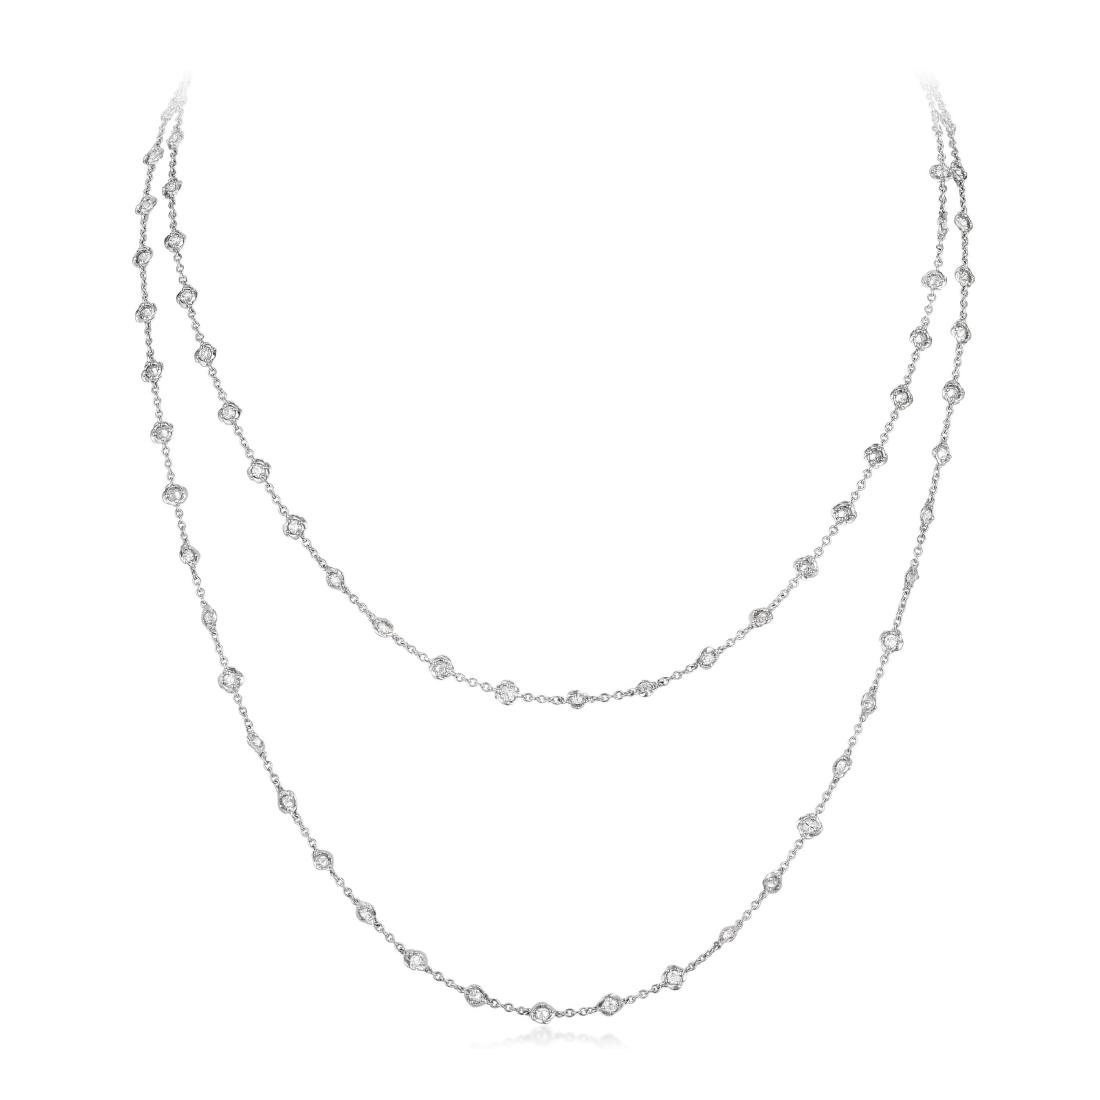 Morelli Diamond Necklace